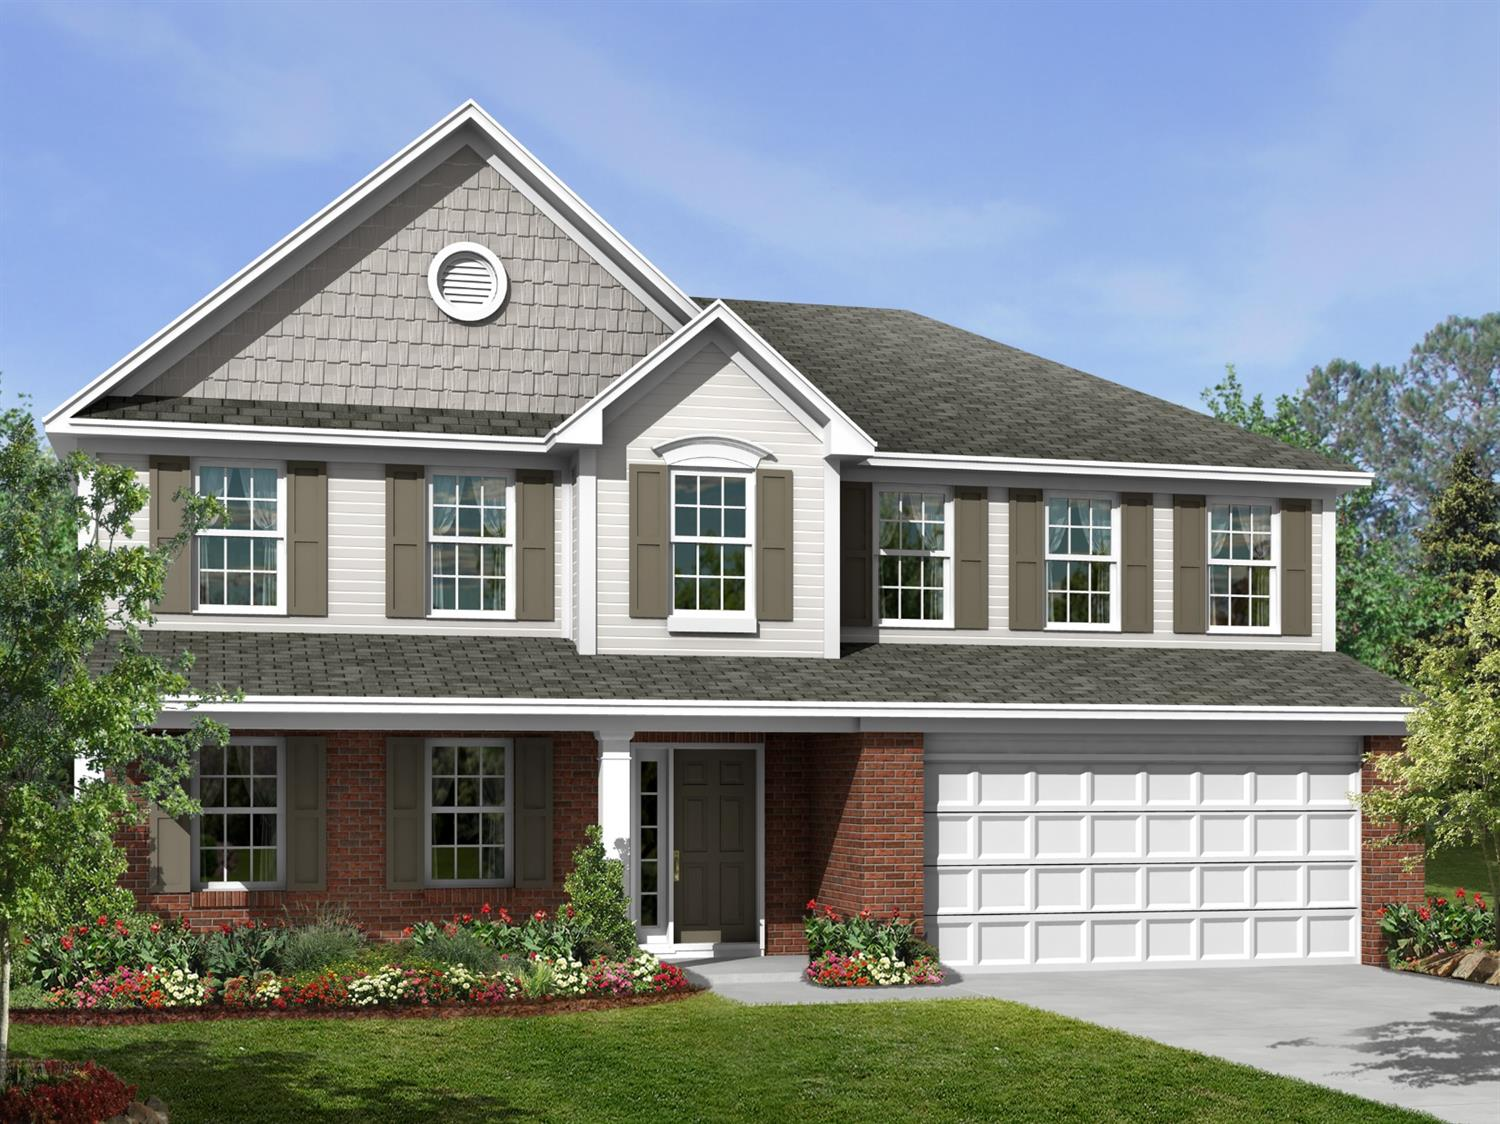 Photo 2 for 9137 West Meadow Dr #20 West Chester - West, OH 45069